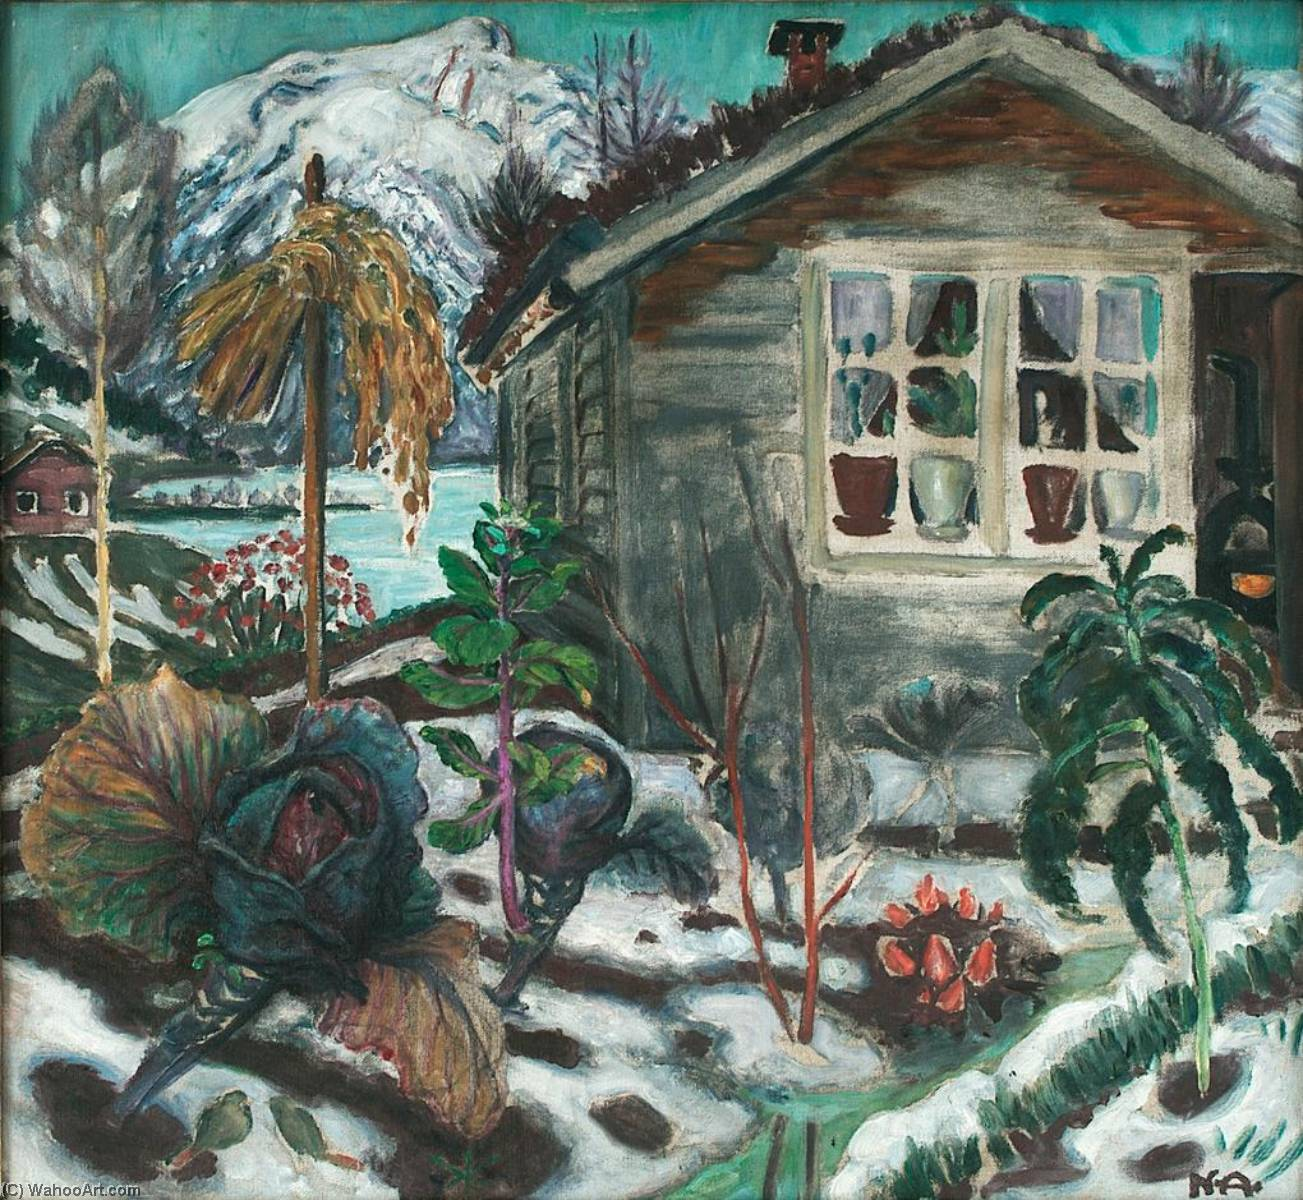 Early Snow, 1926 by Nikolai Astrup (1880-1928) | Oil Painting | WahooArt.com